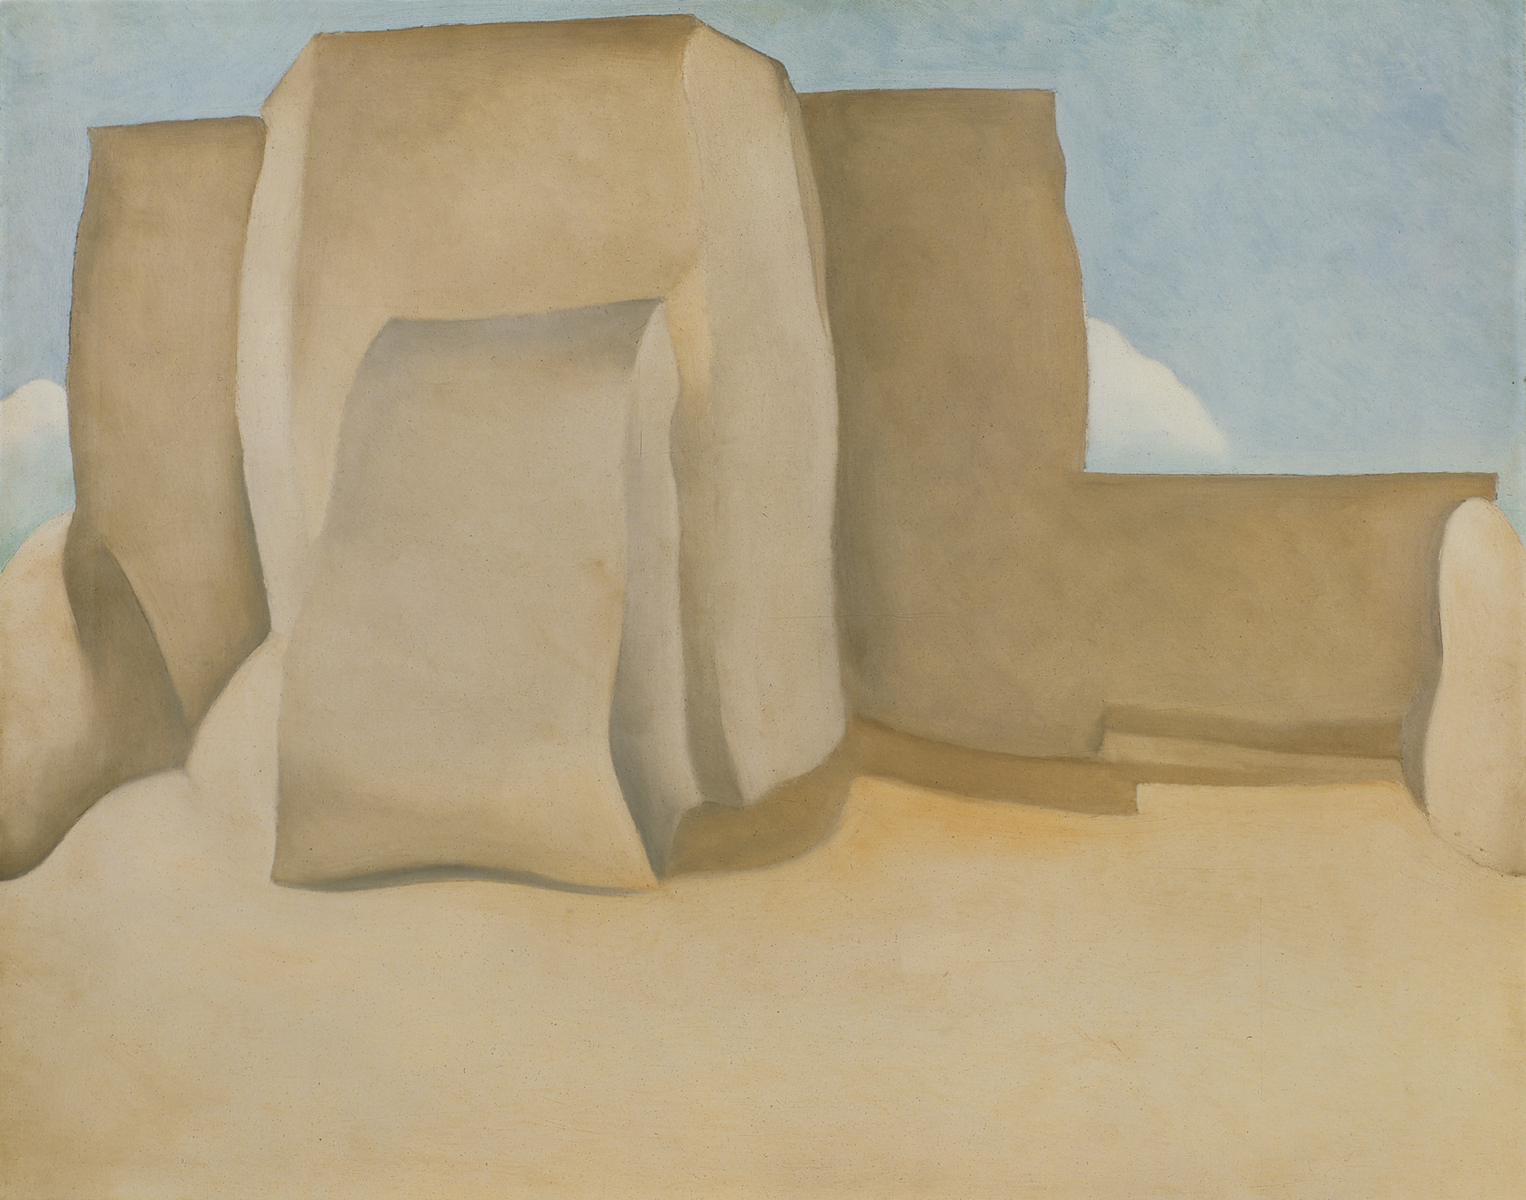 Georgia O'Keeffe, Ranchos Church No.1, 1929; oil on canvas; 18 3/4 x 24 in.; Collection of the Norton Museum of Art, West Palm Beach Florida; © 2009 Georgia O'Keeffe Museum/Artists Rights Society (ARS), New York.